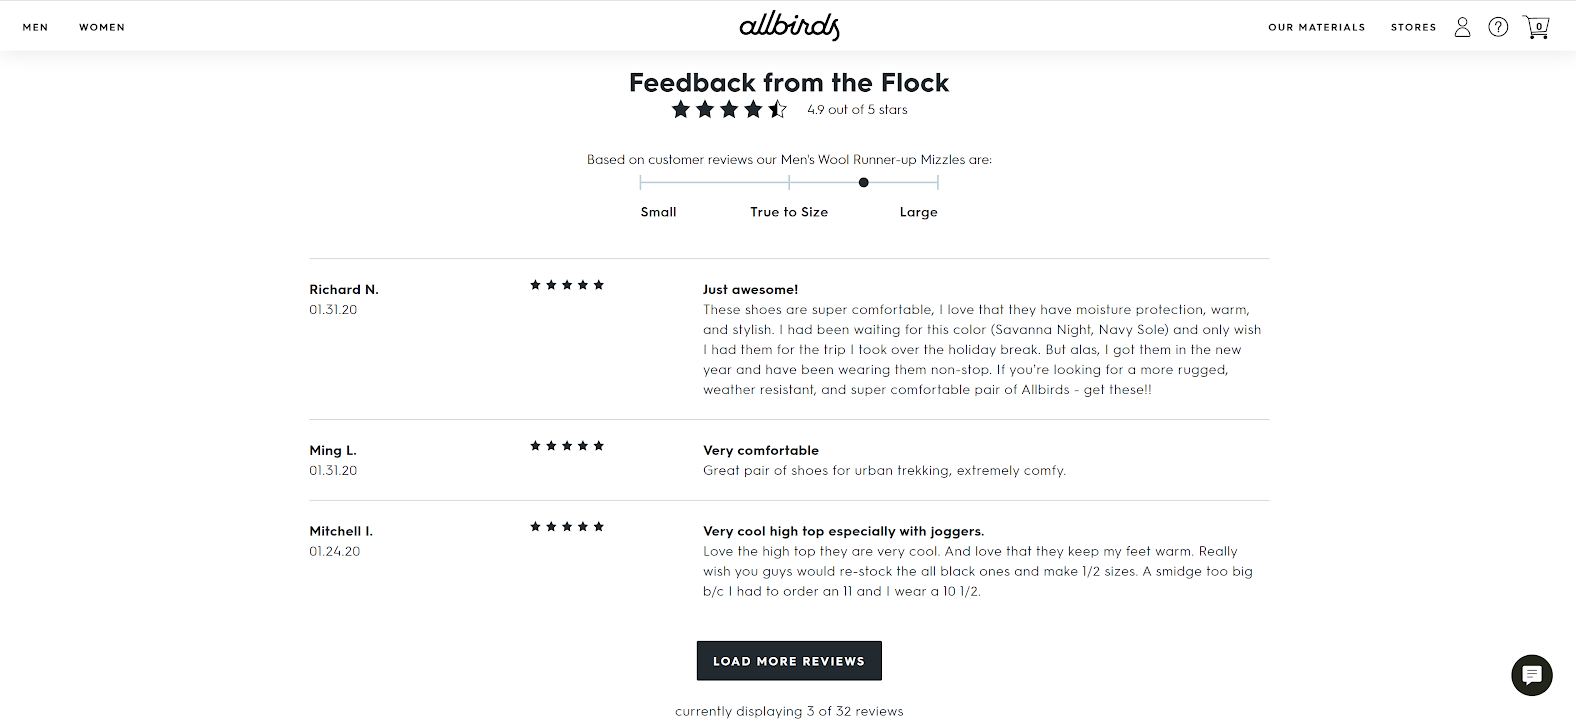 Feedback form from Allbirds